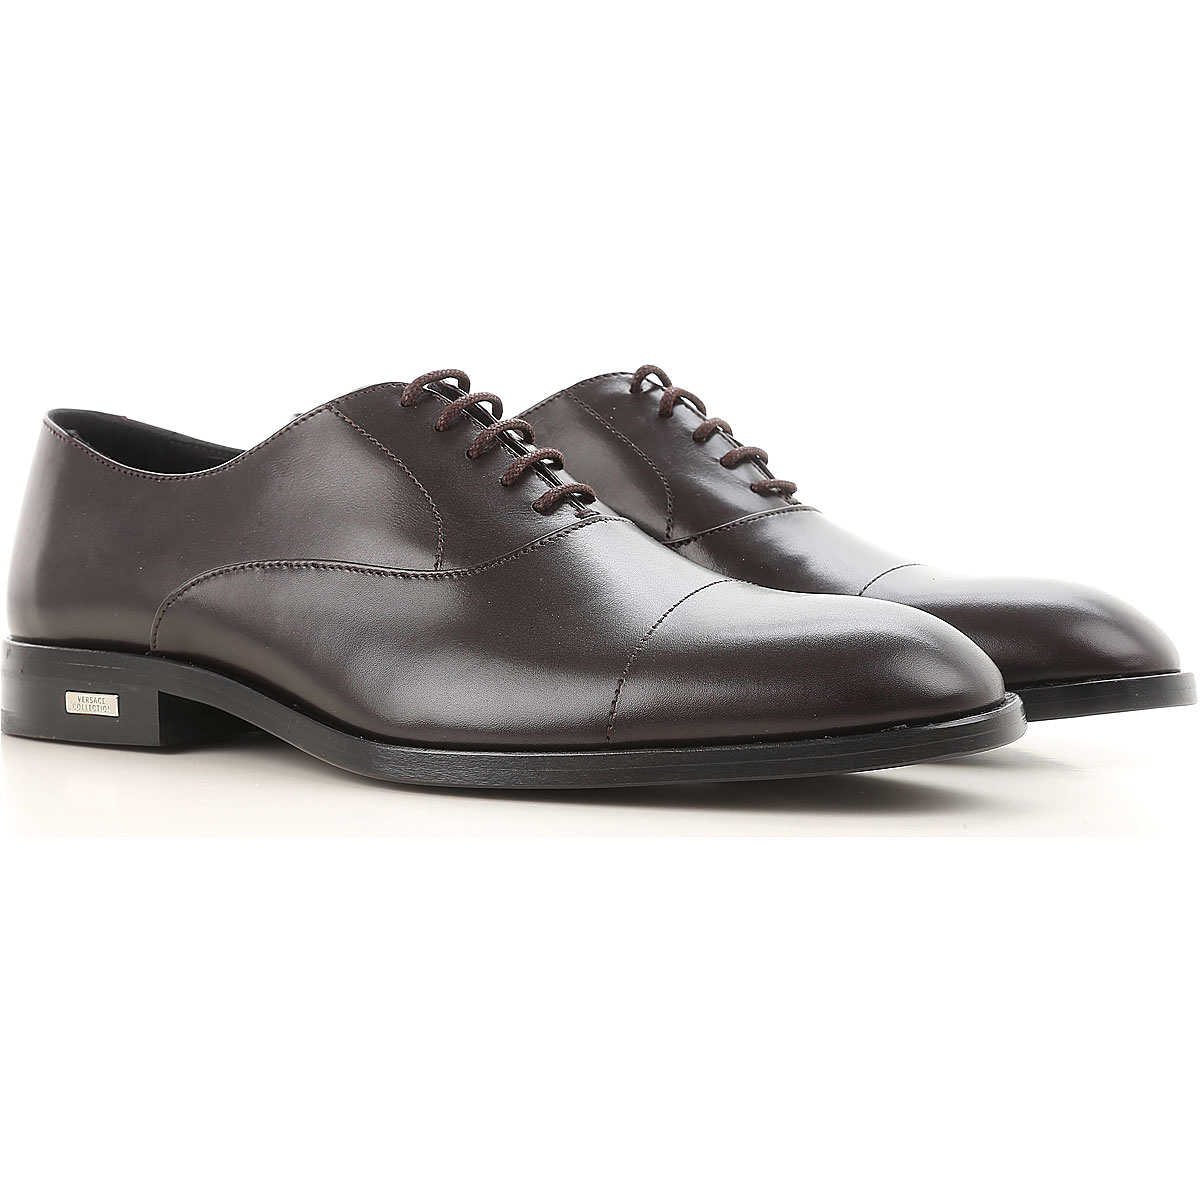 Versace Lace Up Shoes for Men Oxfords Derbies and Brogues On Sale - GOOFASH